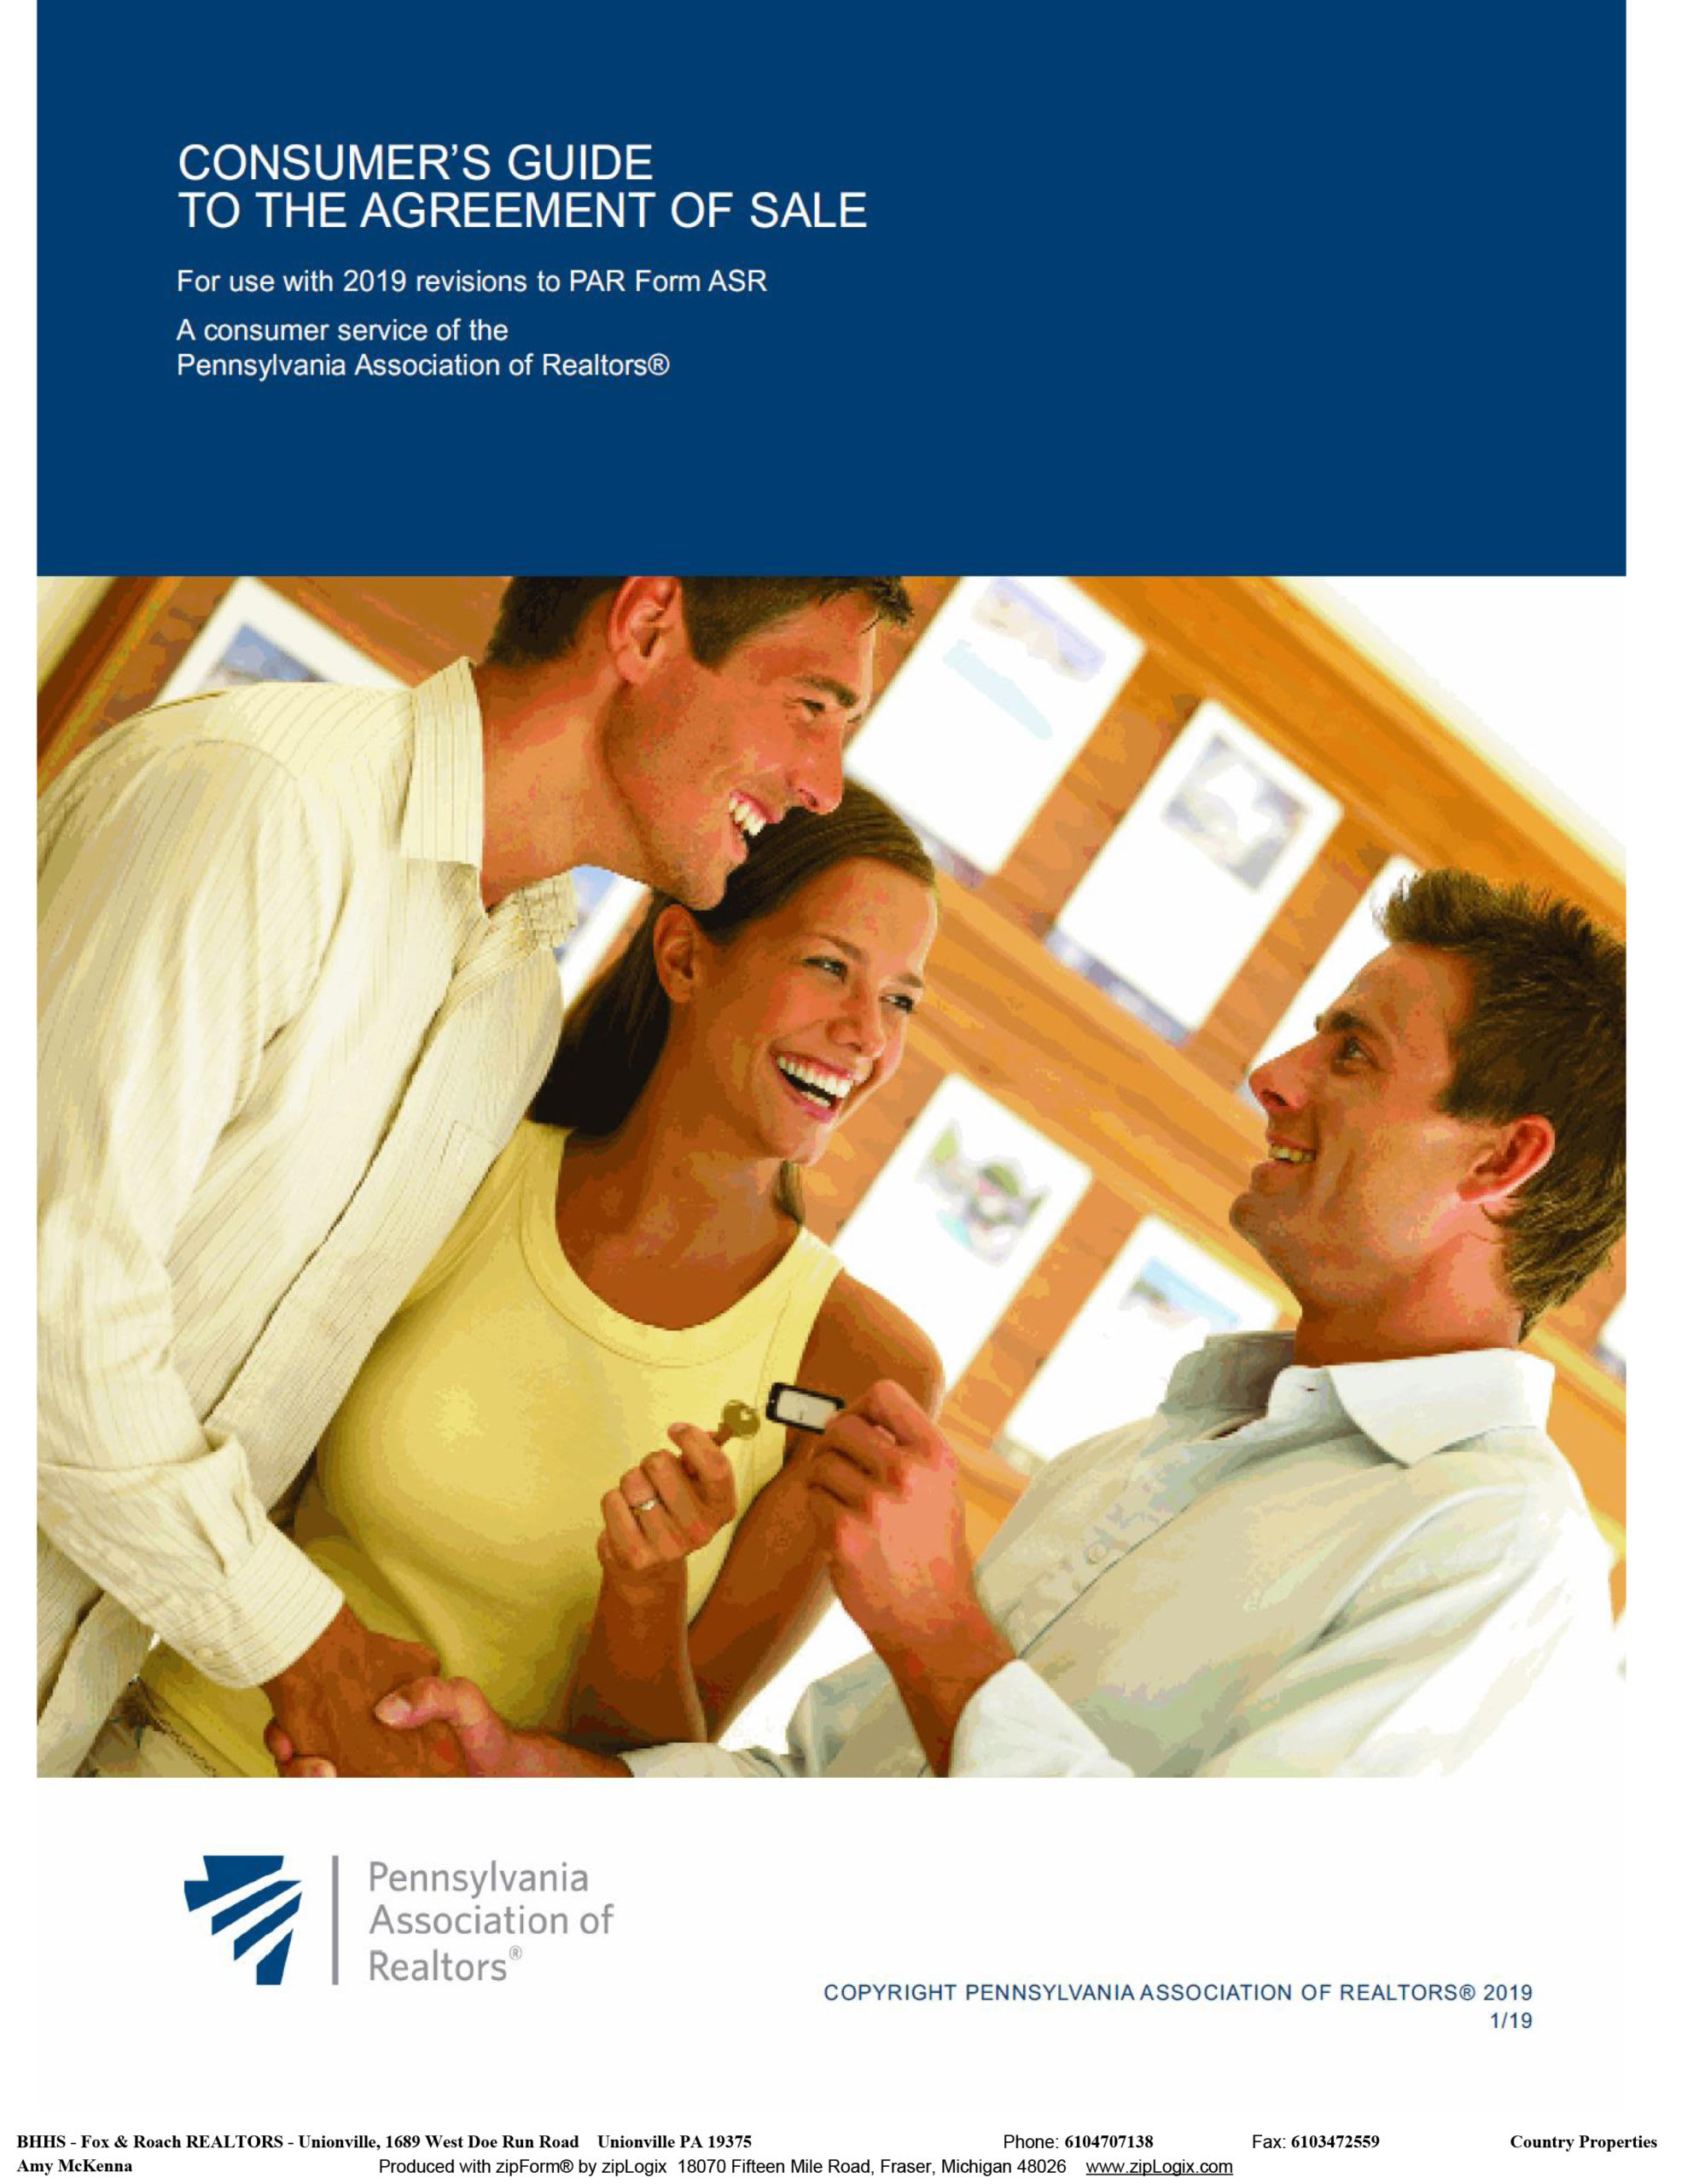 Consumers Guide with an Agreement of Sale